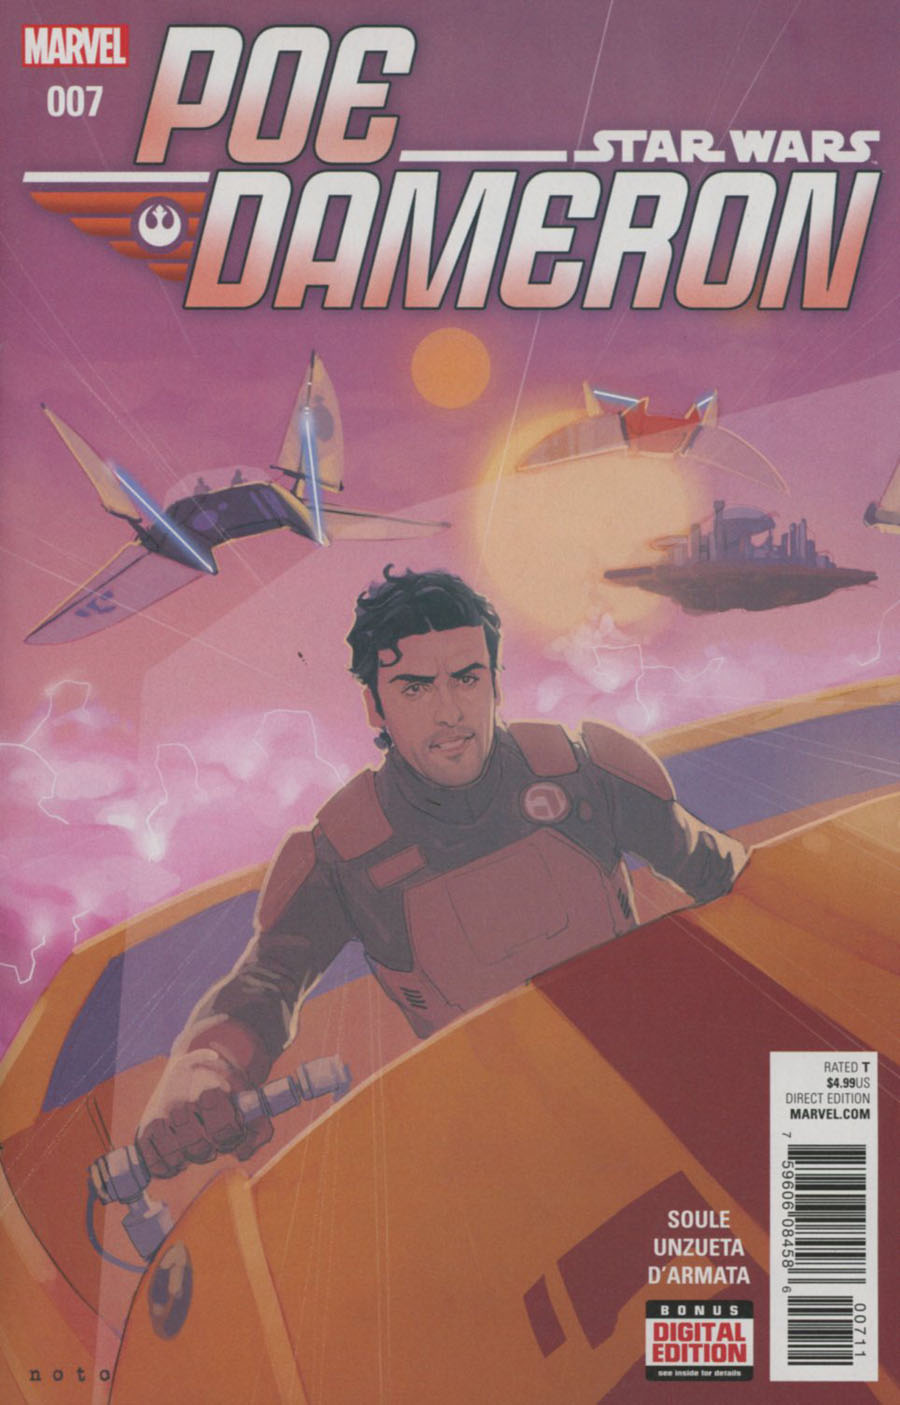 Star Wars Poe Dameron #7 Cover A Regular Phil Noto Cover